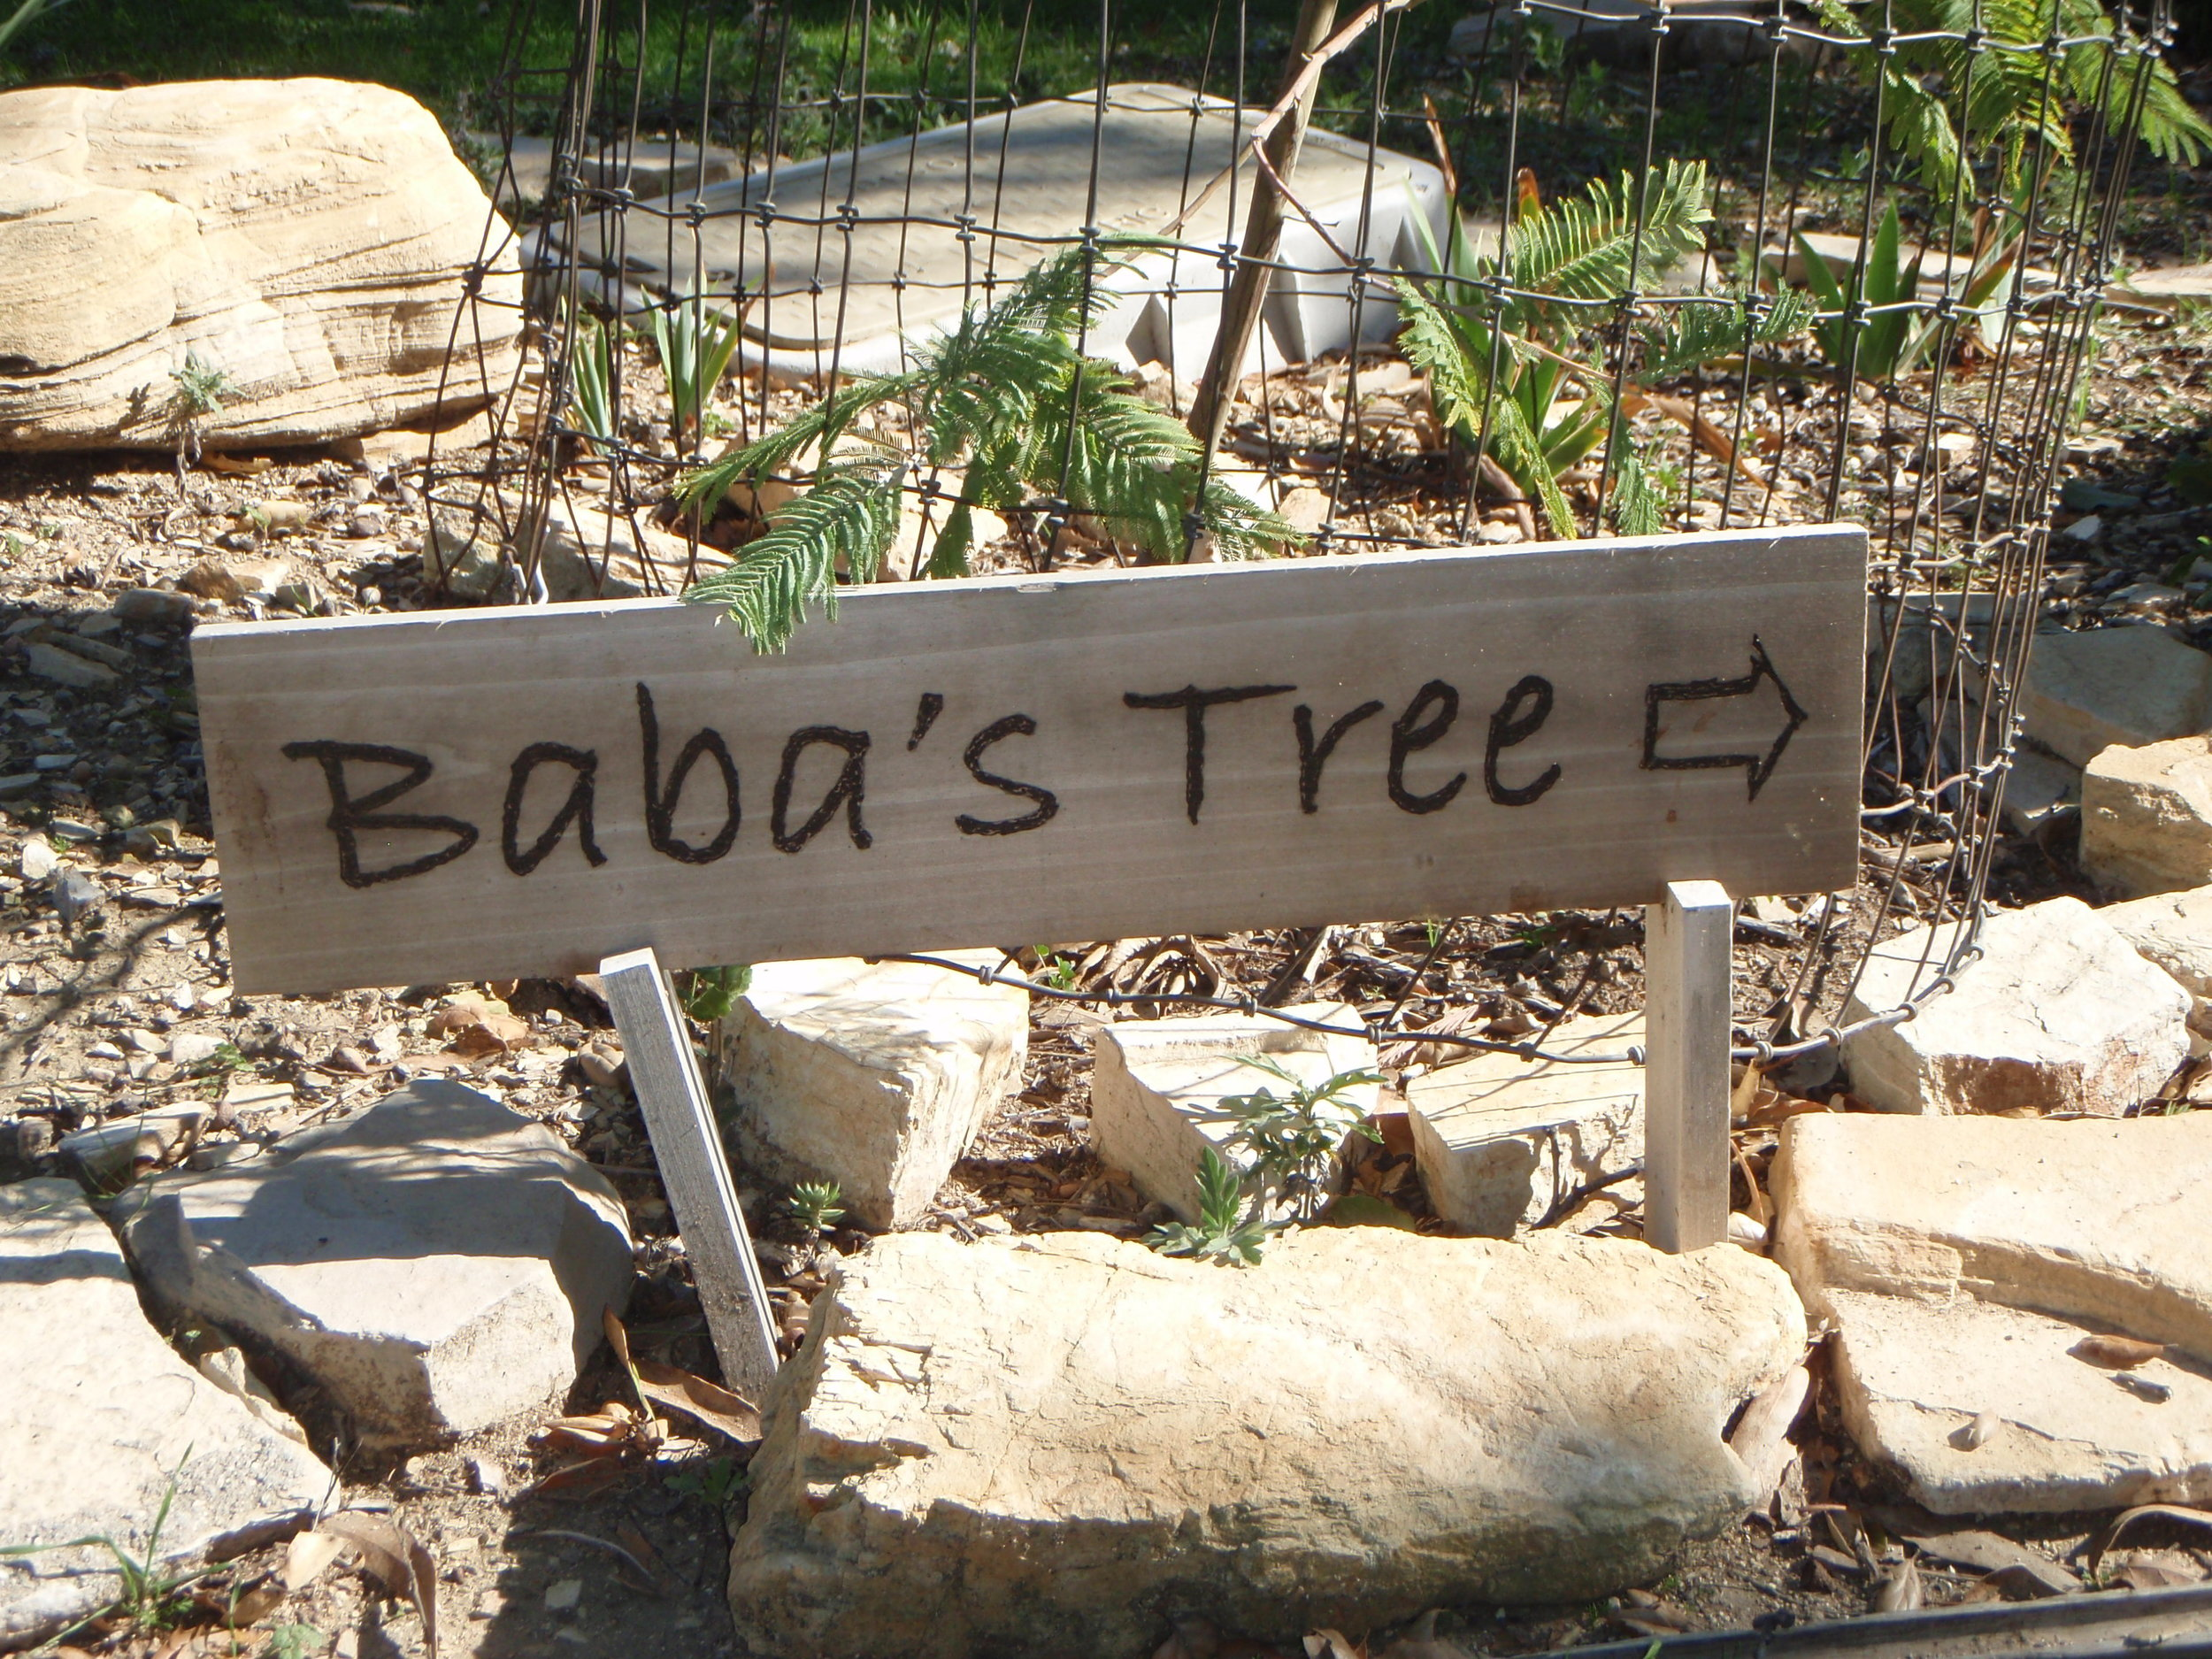 BABA'S TREE directional sign along with a number of other signs were created by former Manager/Caretaker Leslie Bridger to help guide visitors. (Photo: Margaret Magnus, 2015)